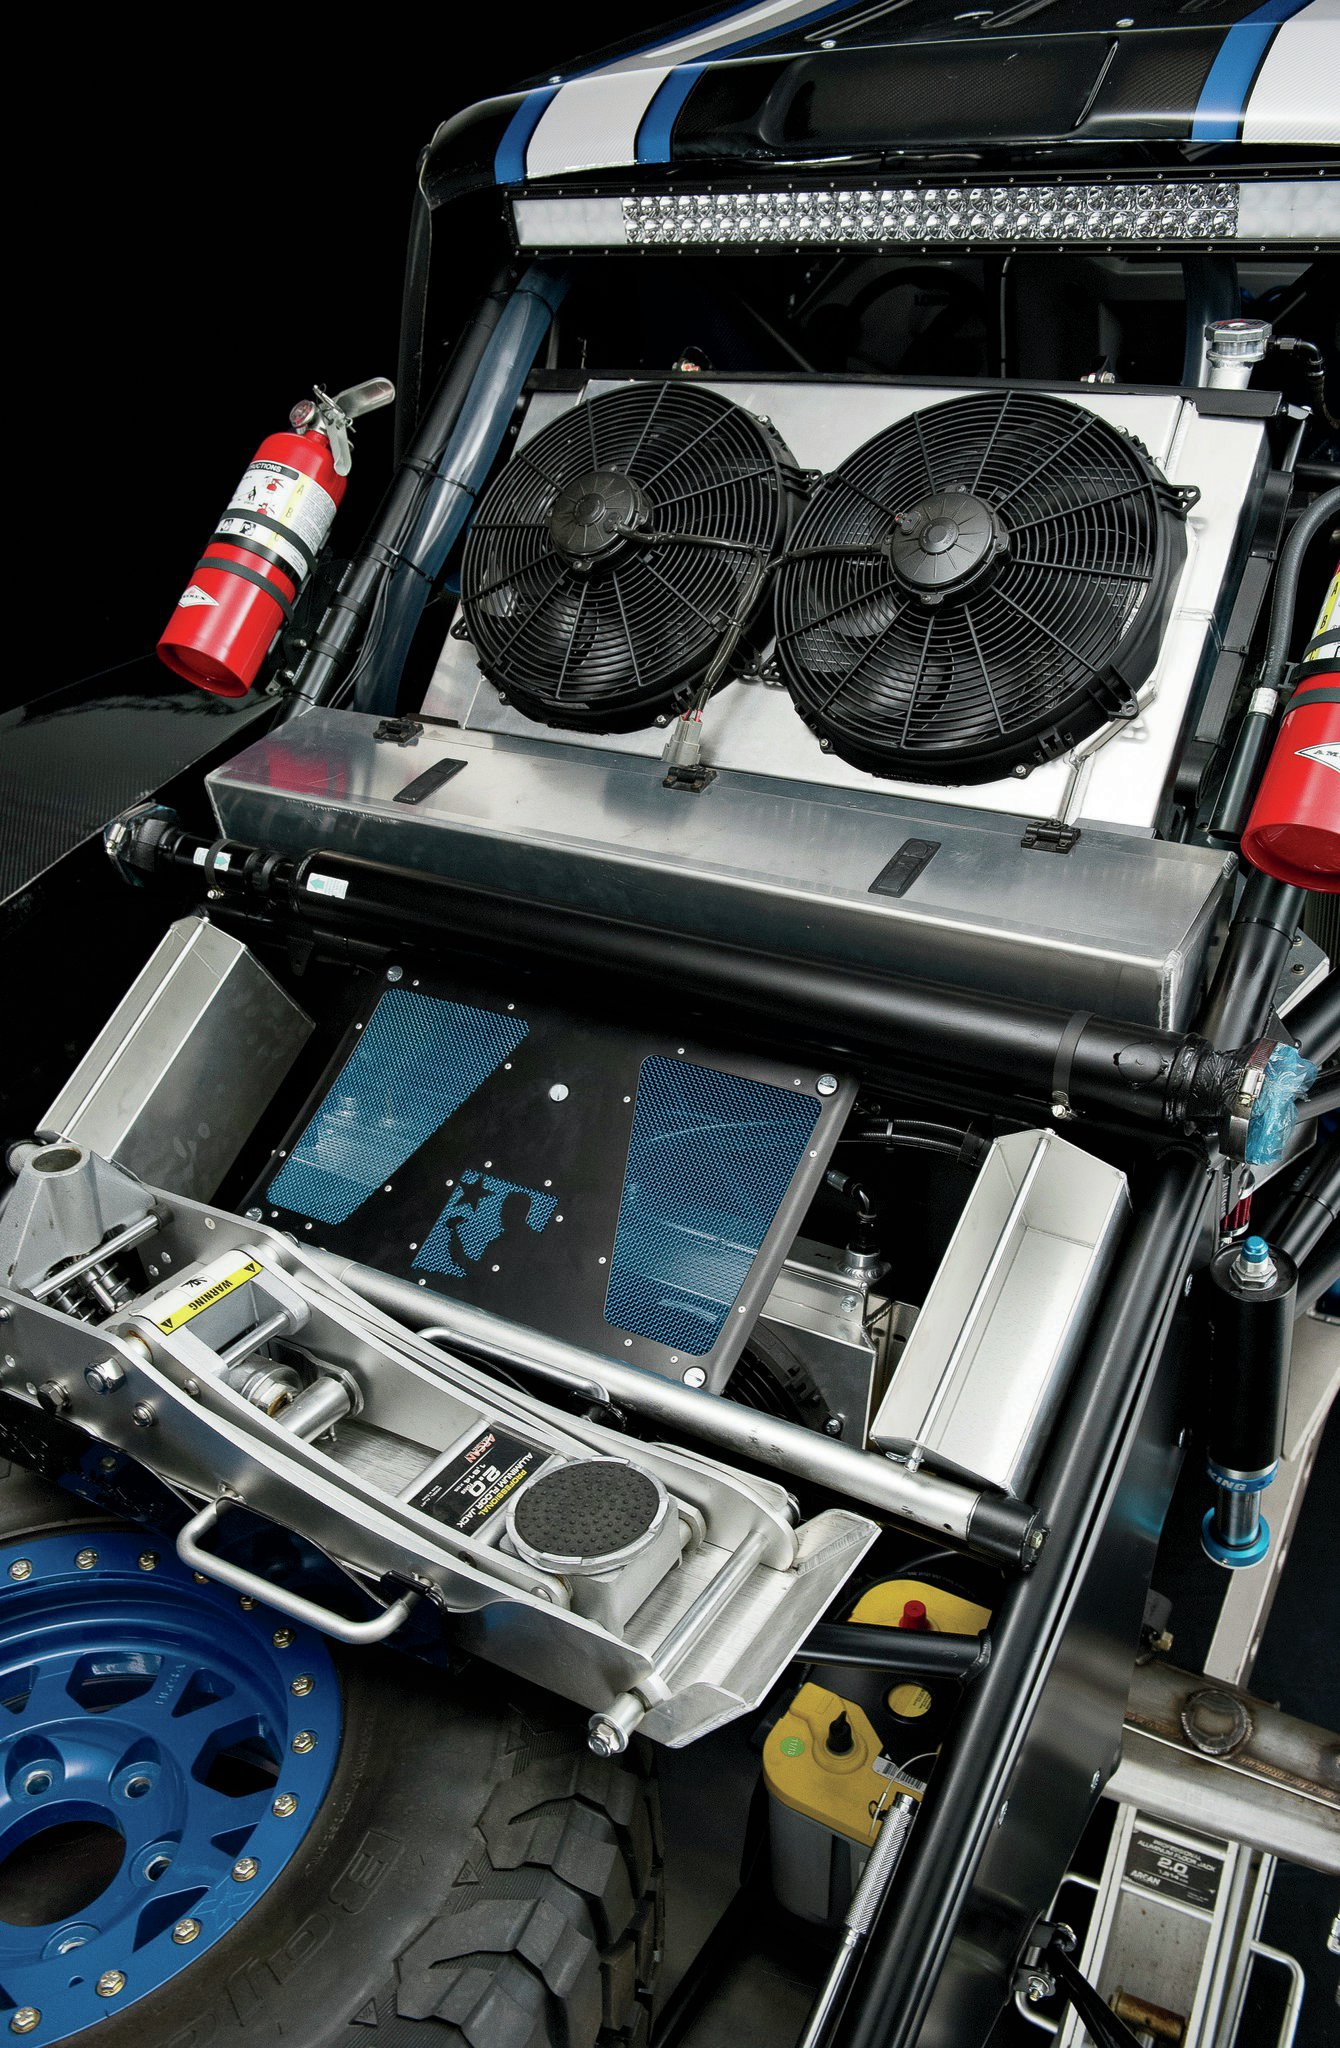 The cooling system consists of a CBR radiator and transmission cooler and custom Brenthel plumbing.